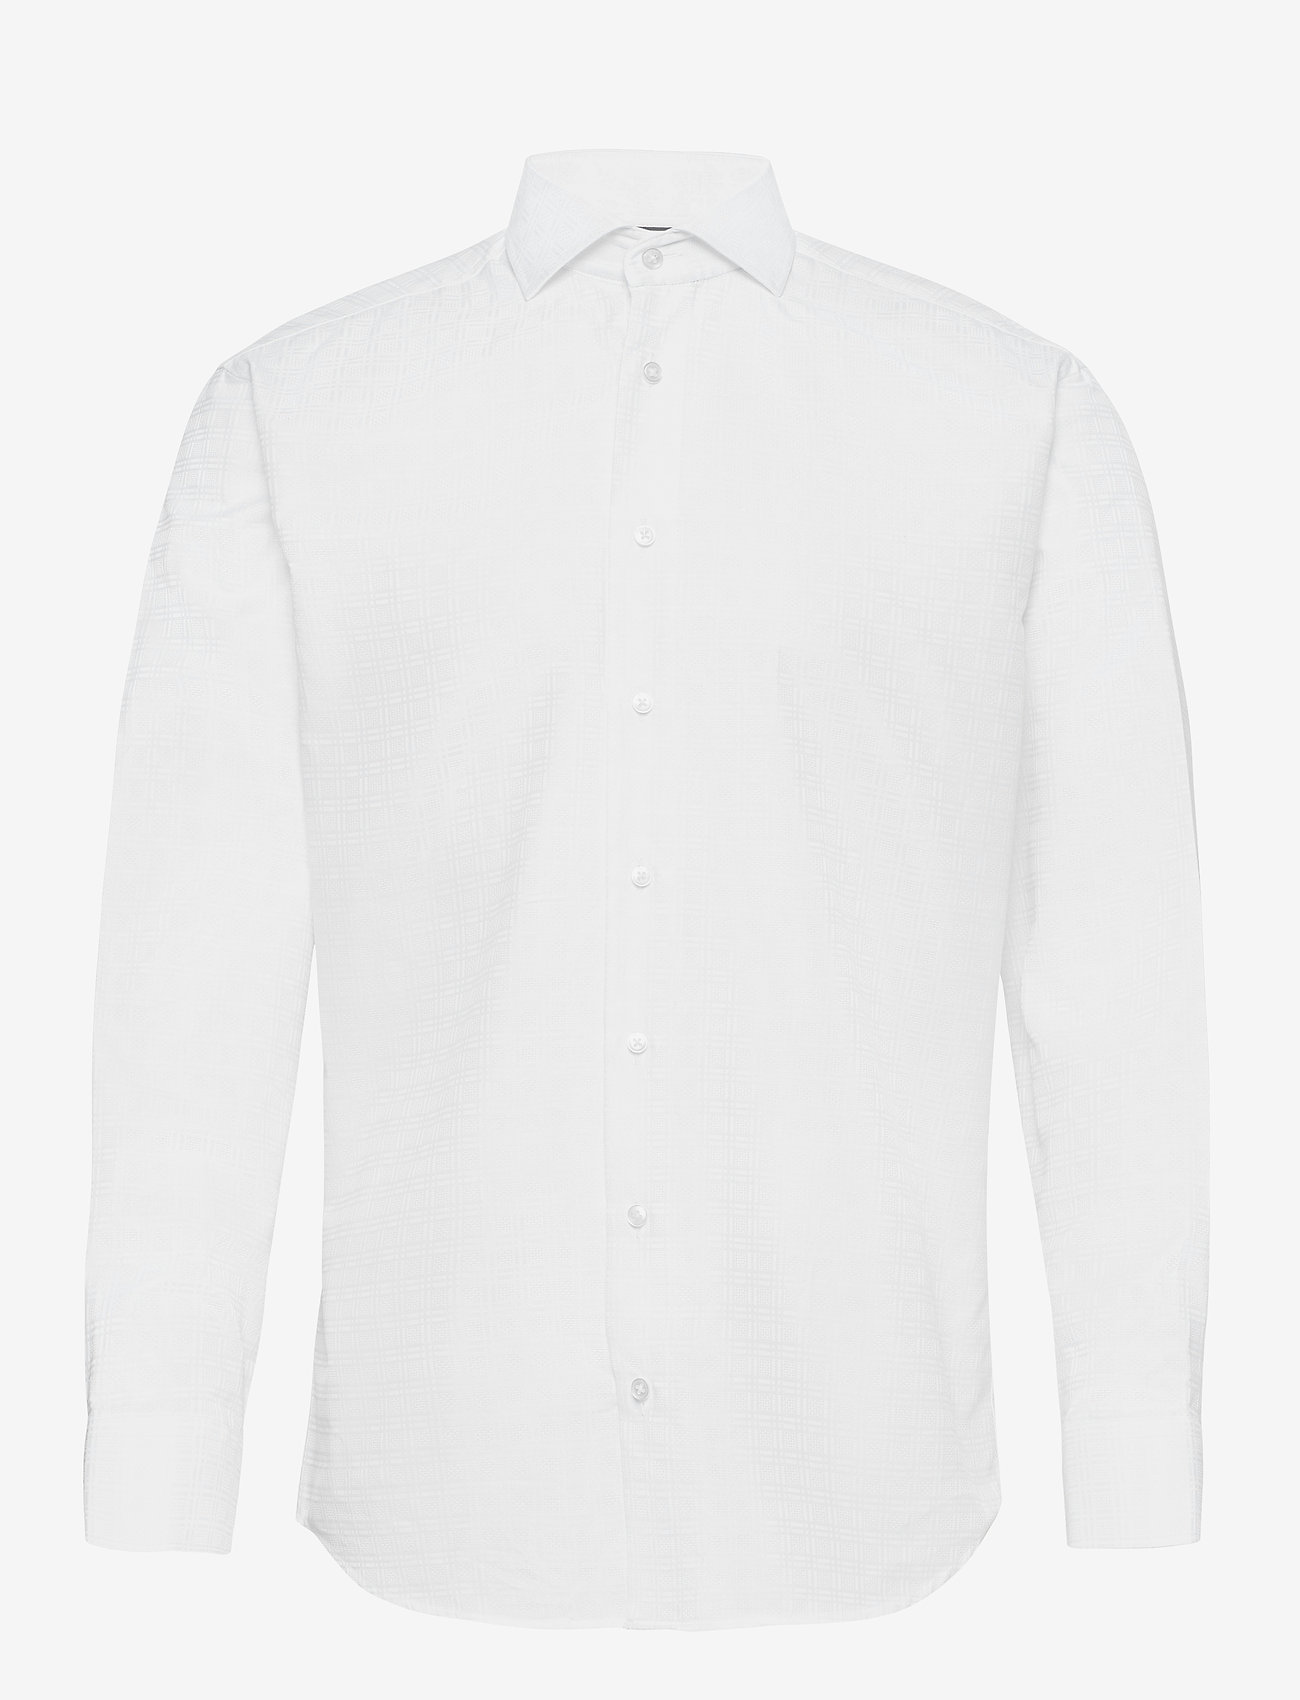 Bosweel Shirts Est. 1937 - 2PLY pattern in white - chemises basiques - white - 0